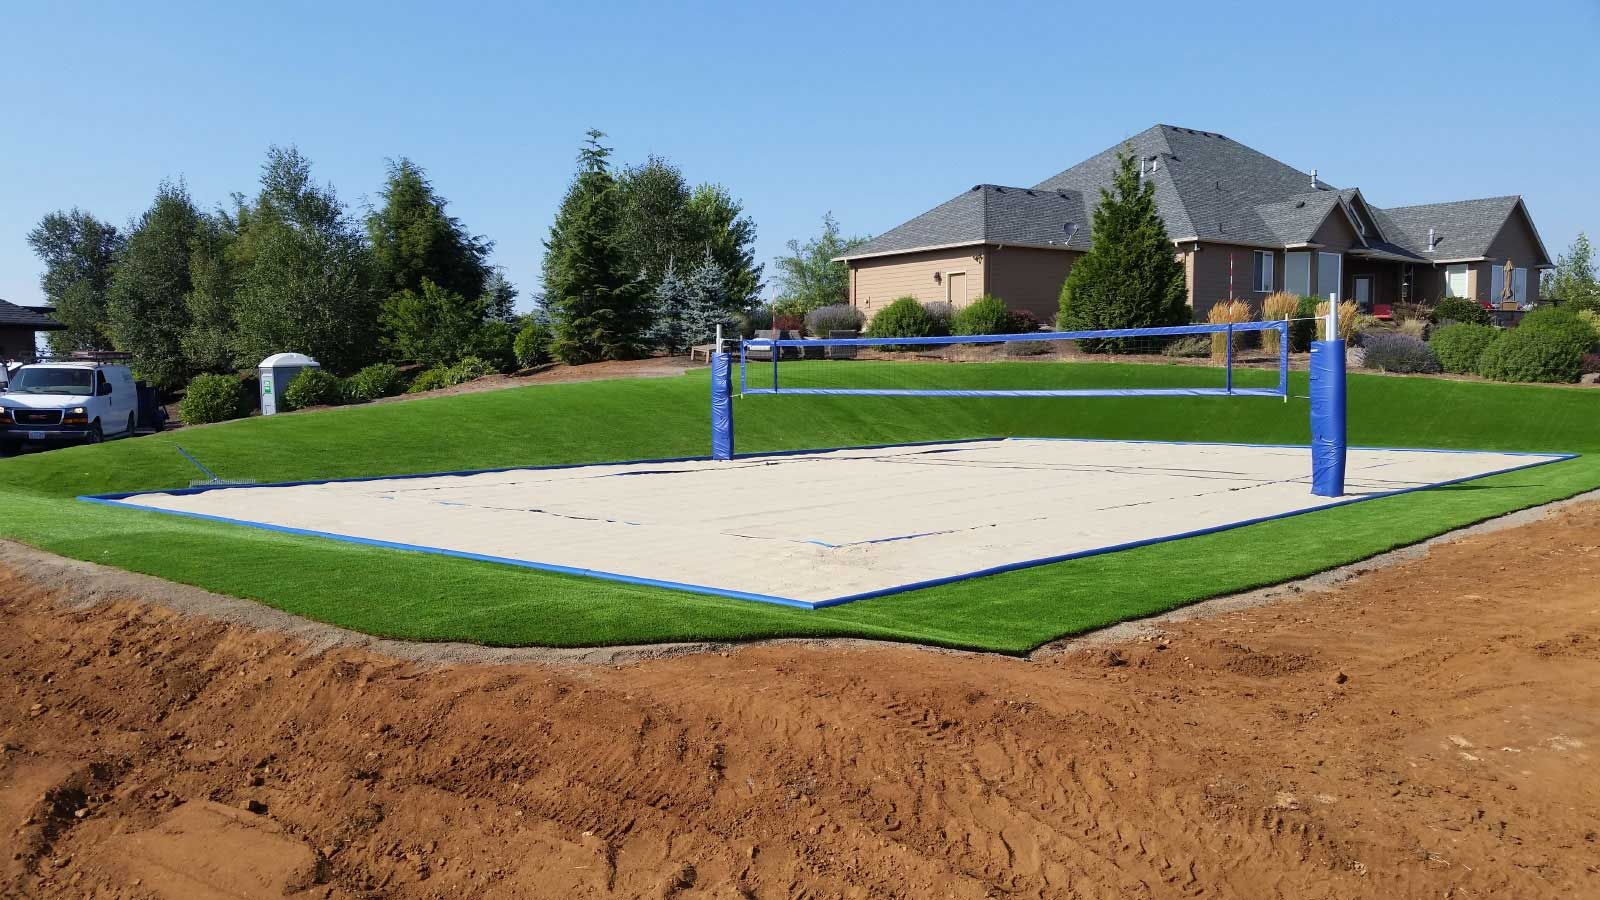 Backyard Sand Volleyball Court In 2020 Sand Volleyball Court Basketball Court Backyard Beach Volleyball Court